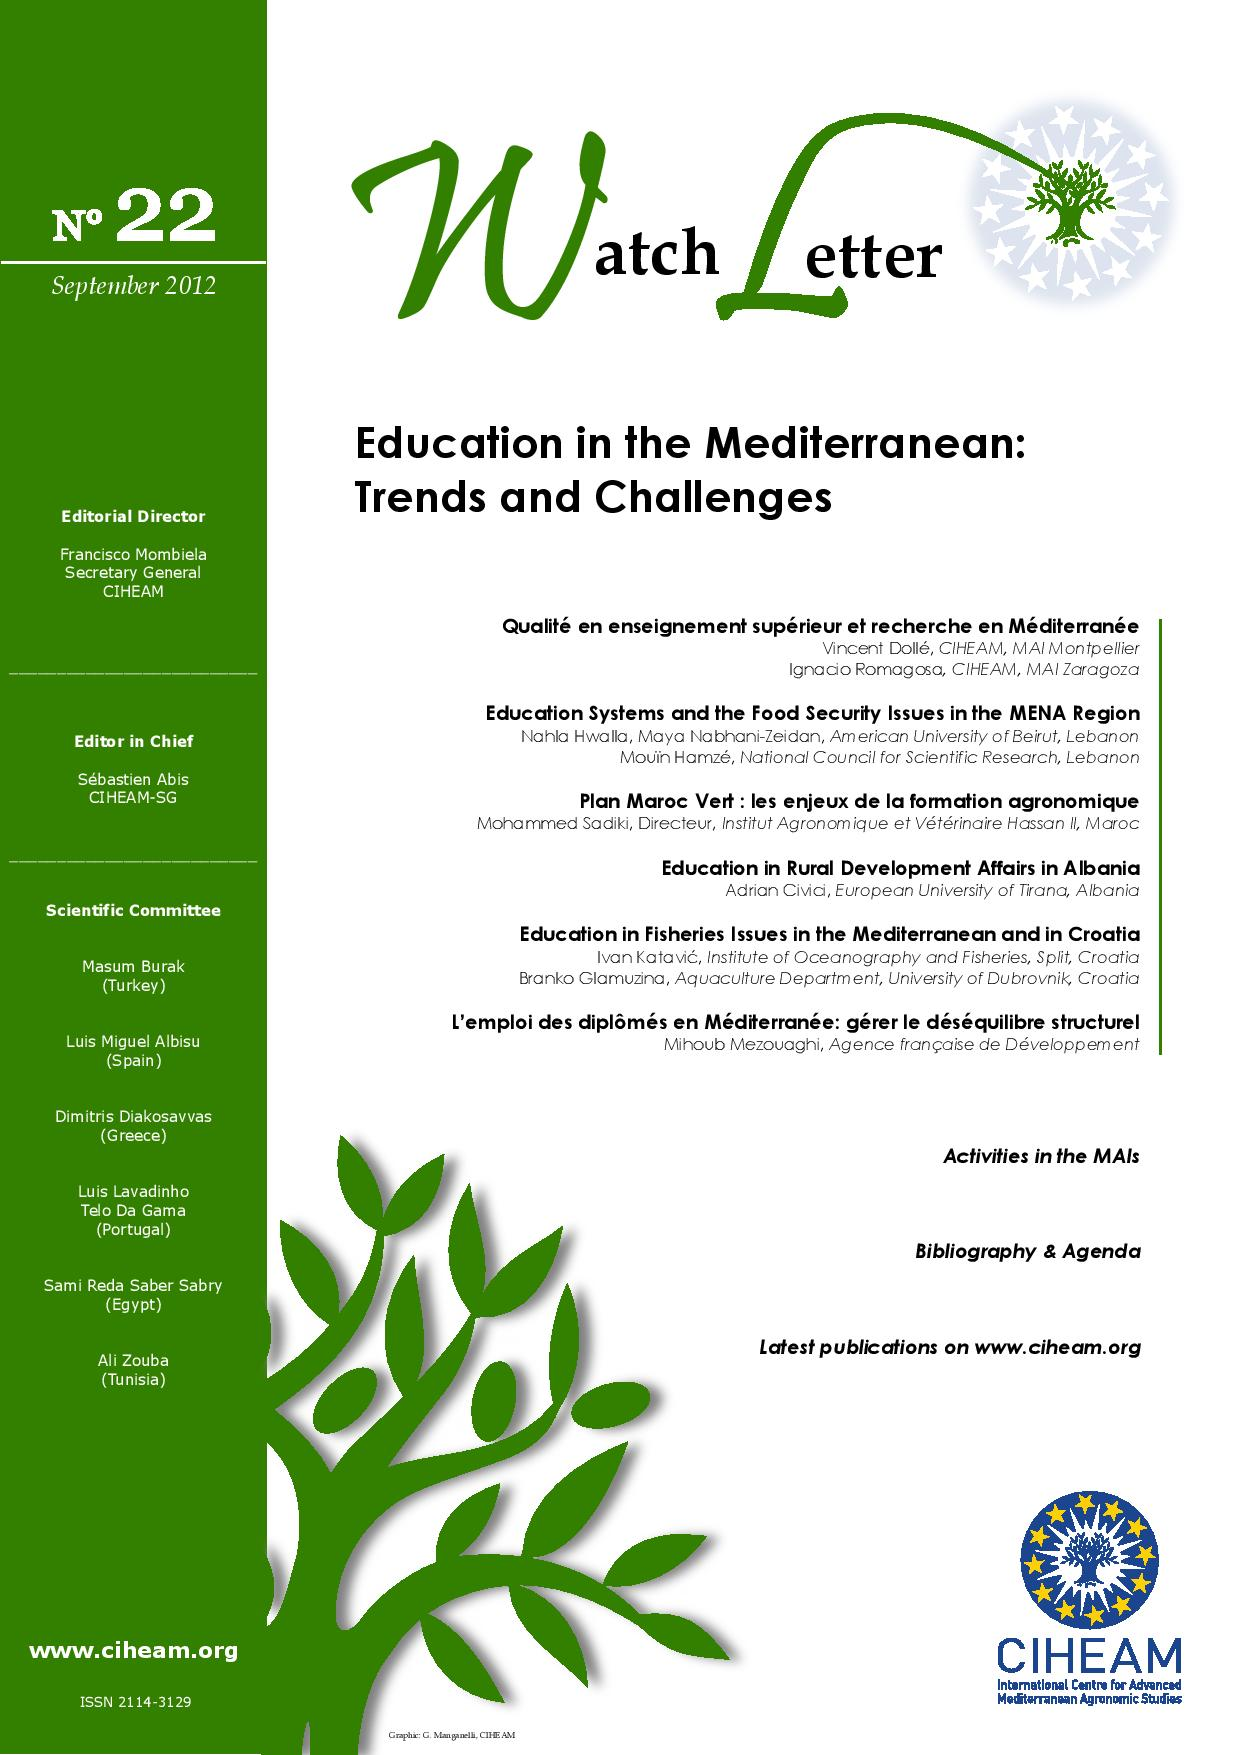 WL 22 Education in the Mediterranean: Trends and Challenges